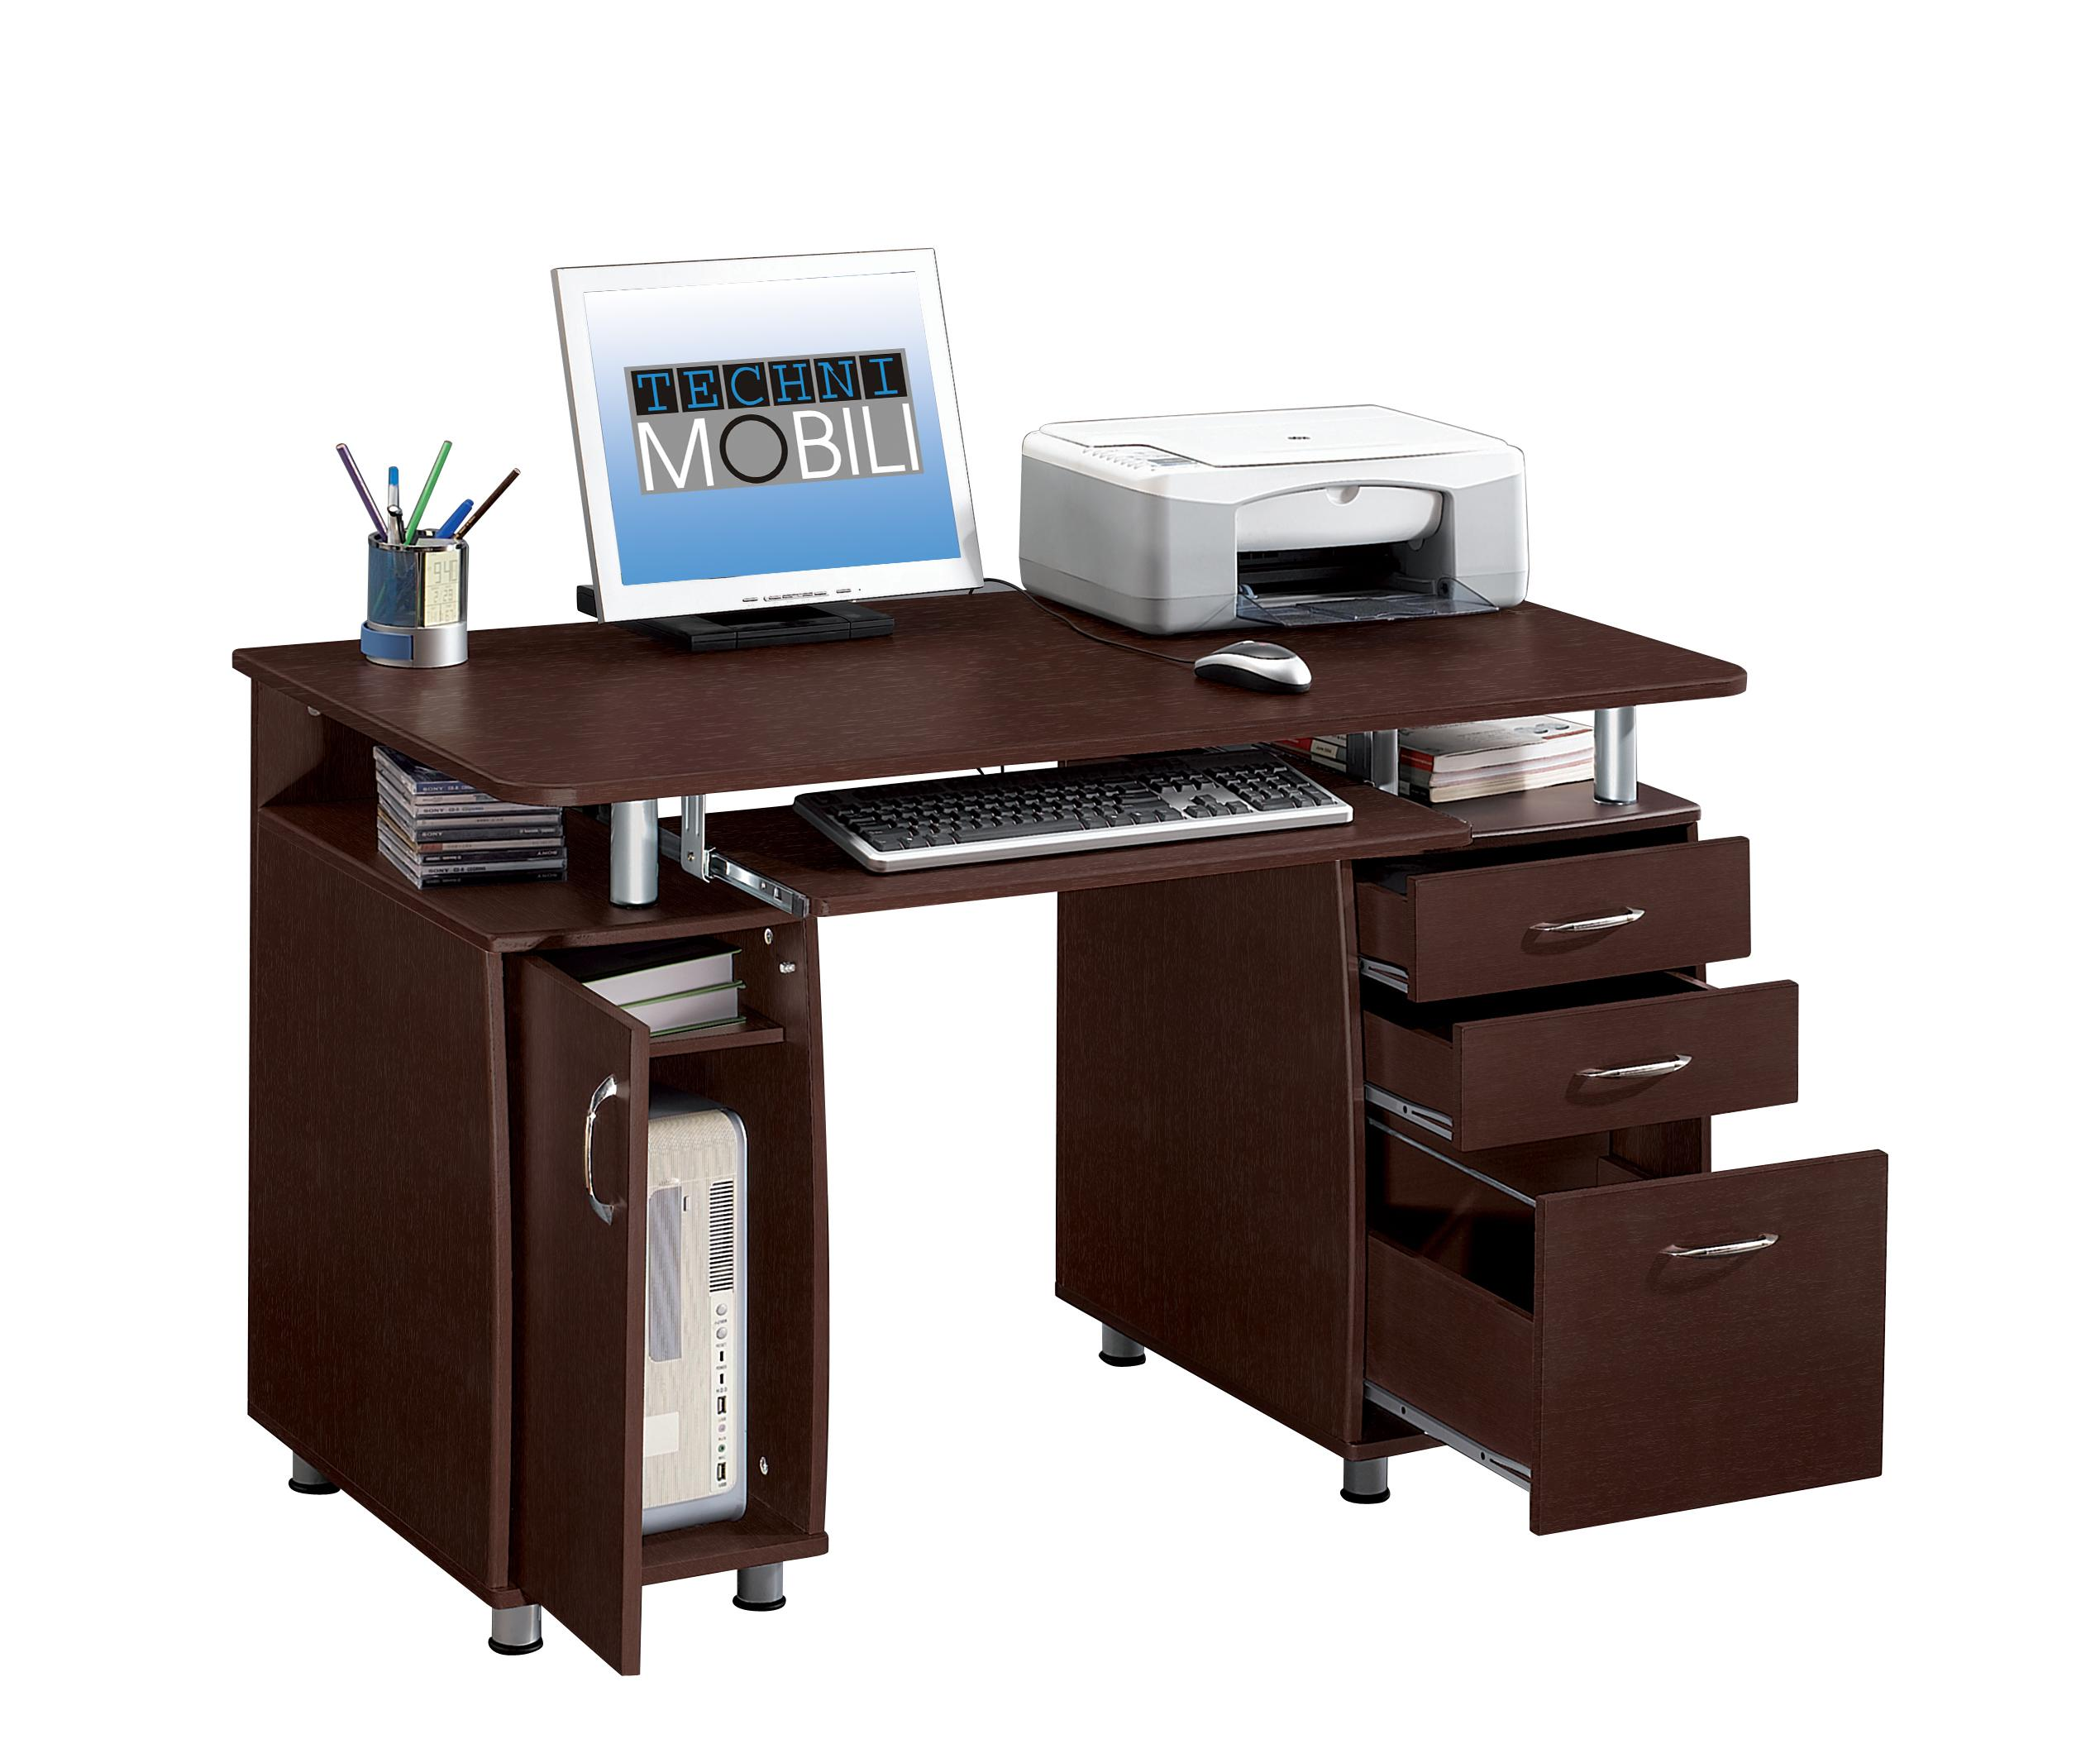 Workstation Furniture Techni Mobili Rta 4985 Ch36 Double Pedestal Multifunction